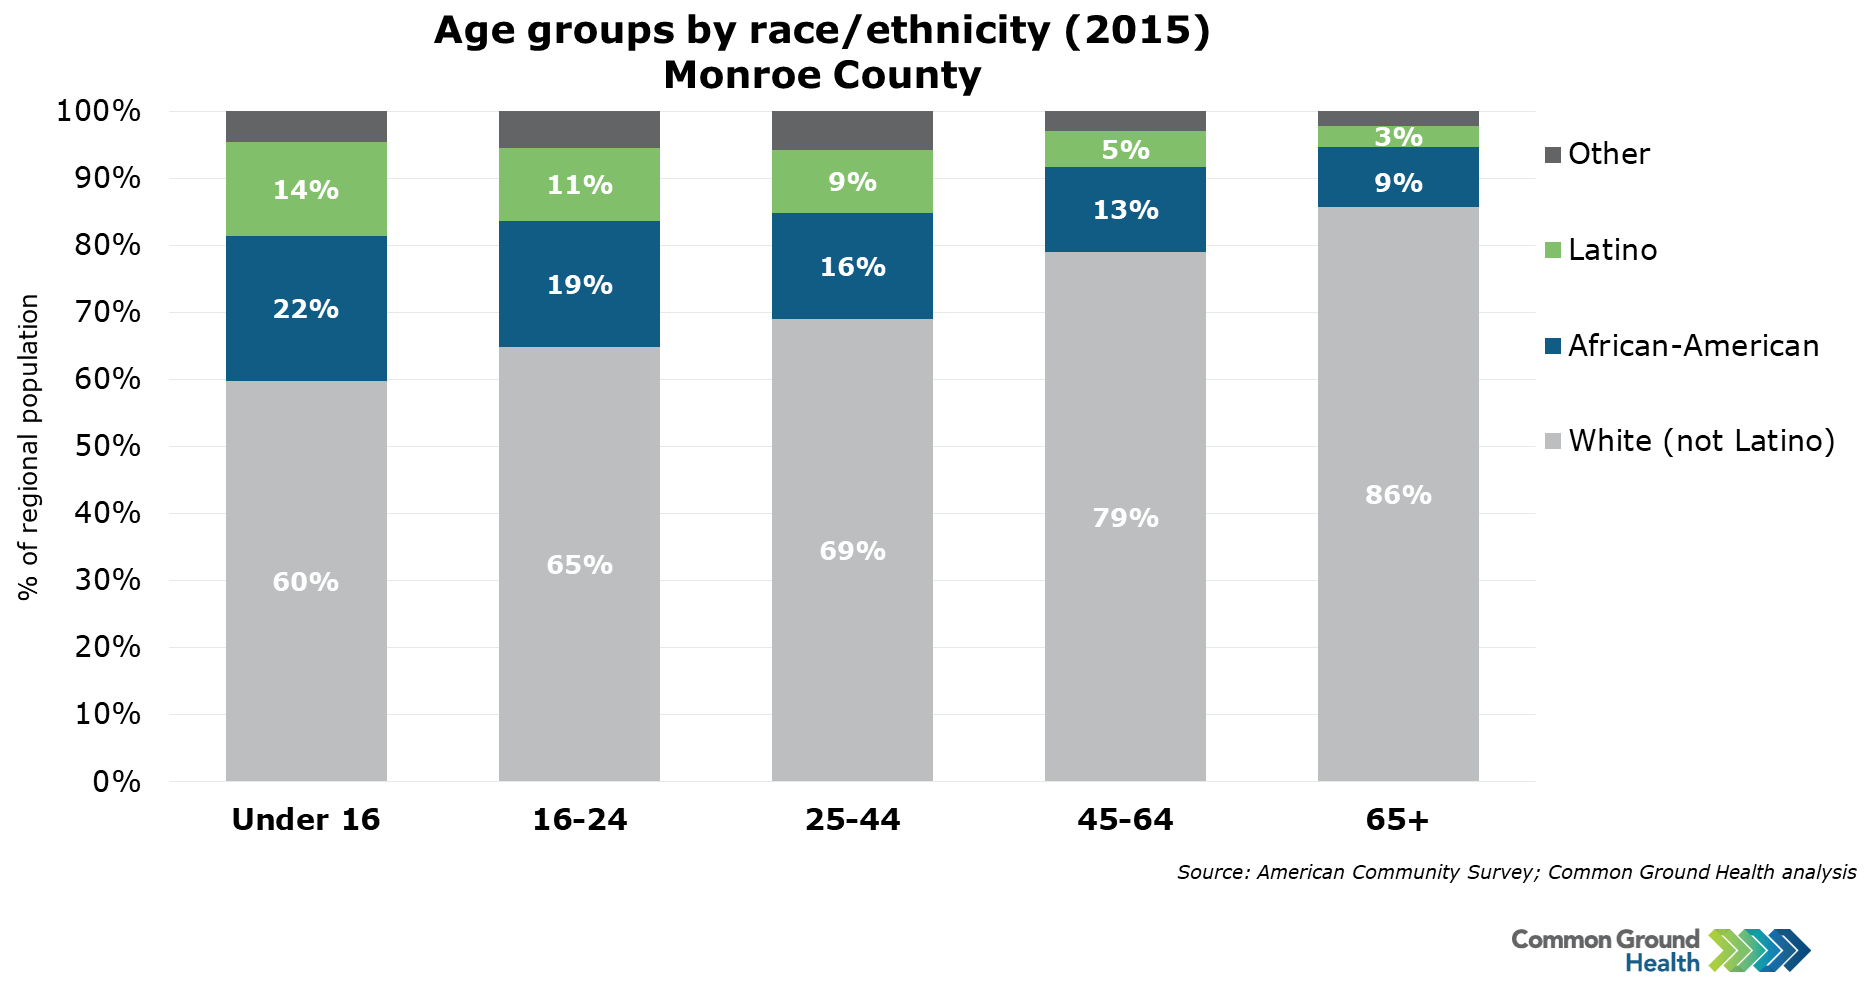 Age Group by Race/Ethnicity